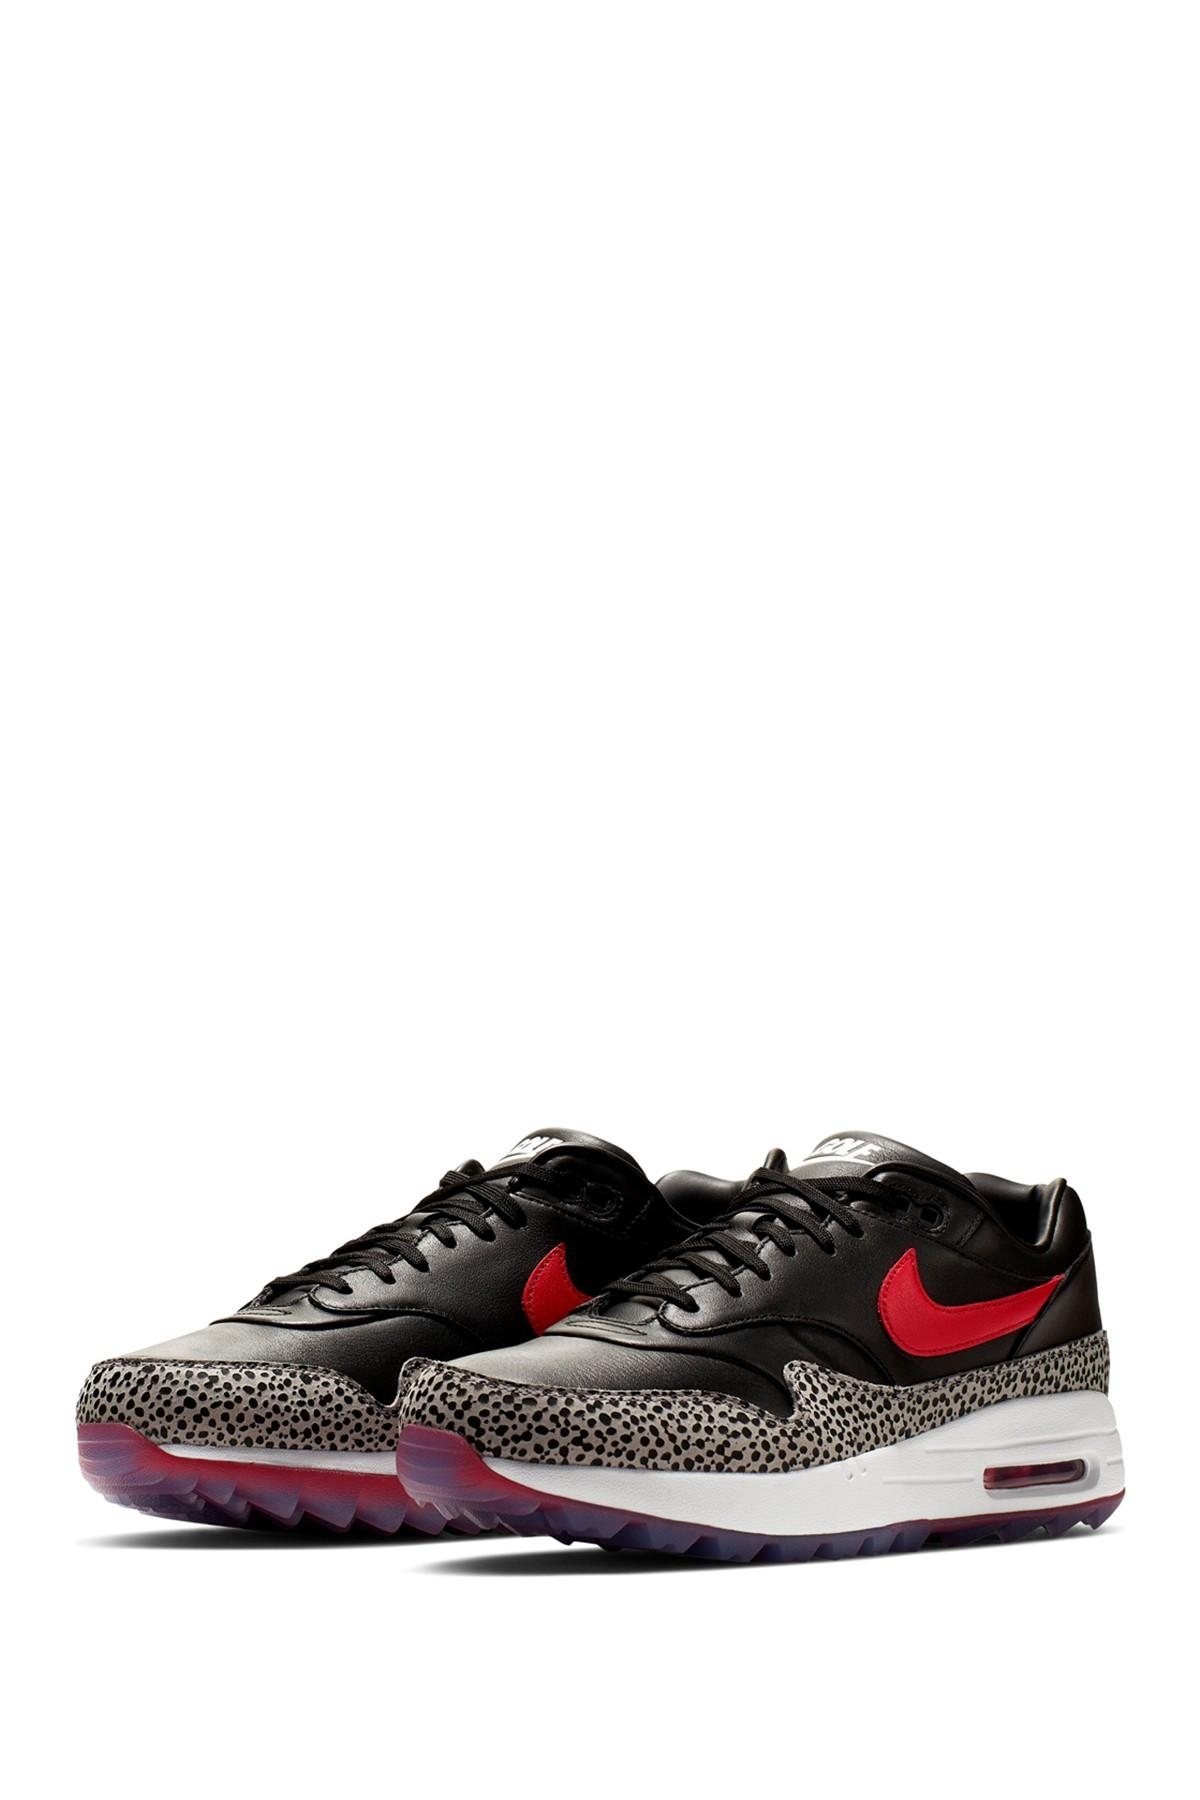 Nike Synthetic Air Max 1g Nrg Golf Shoe In Black For Men Lyst